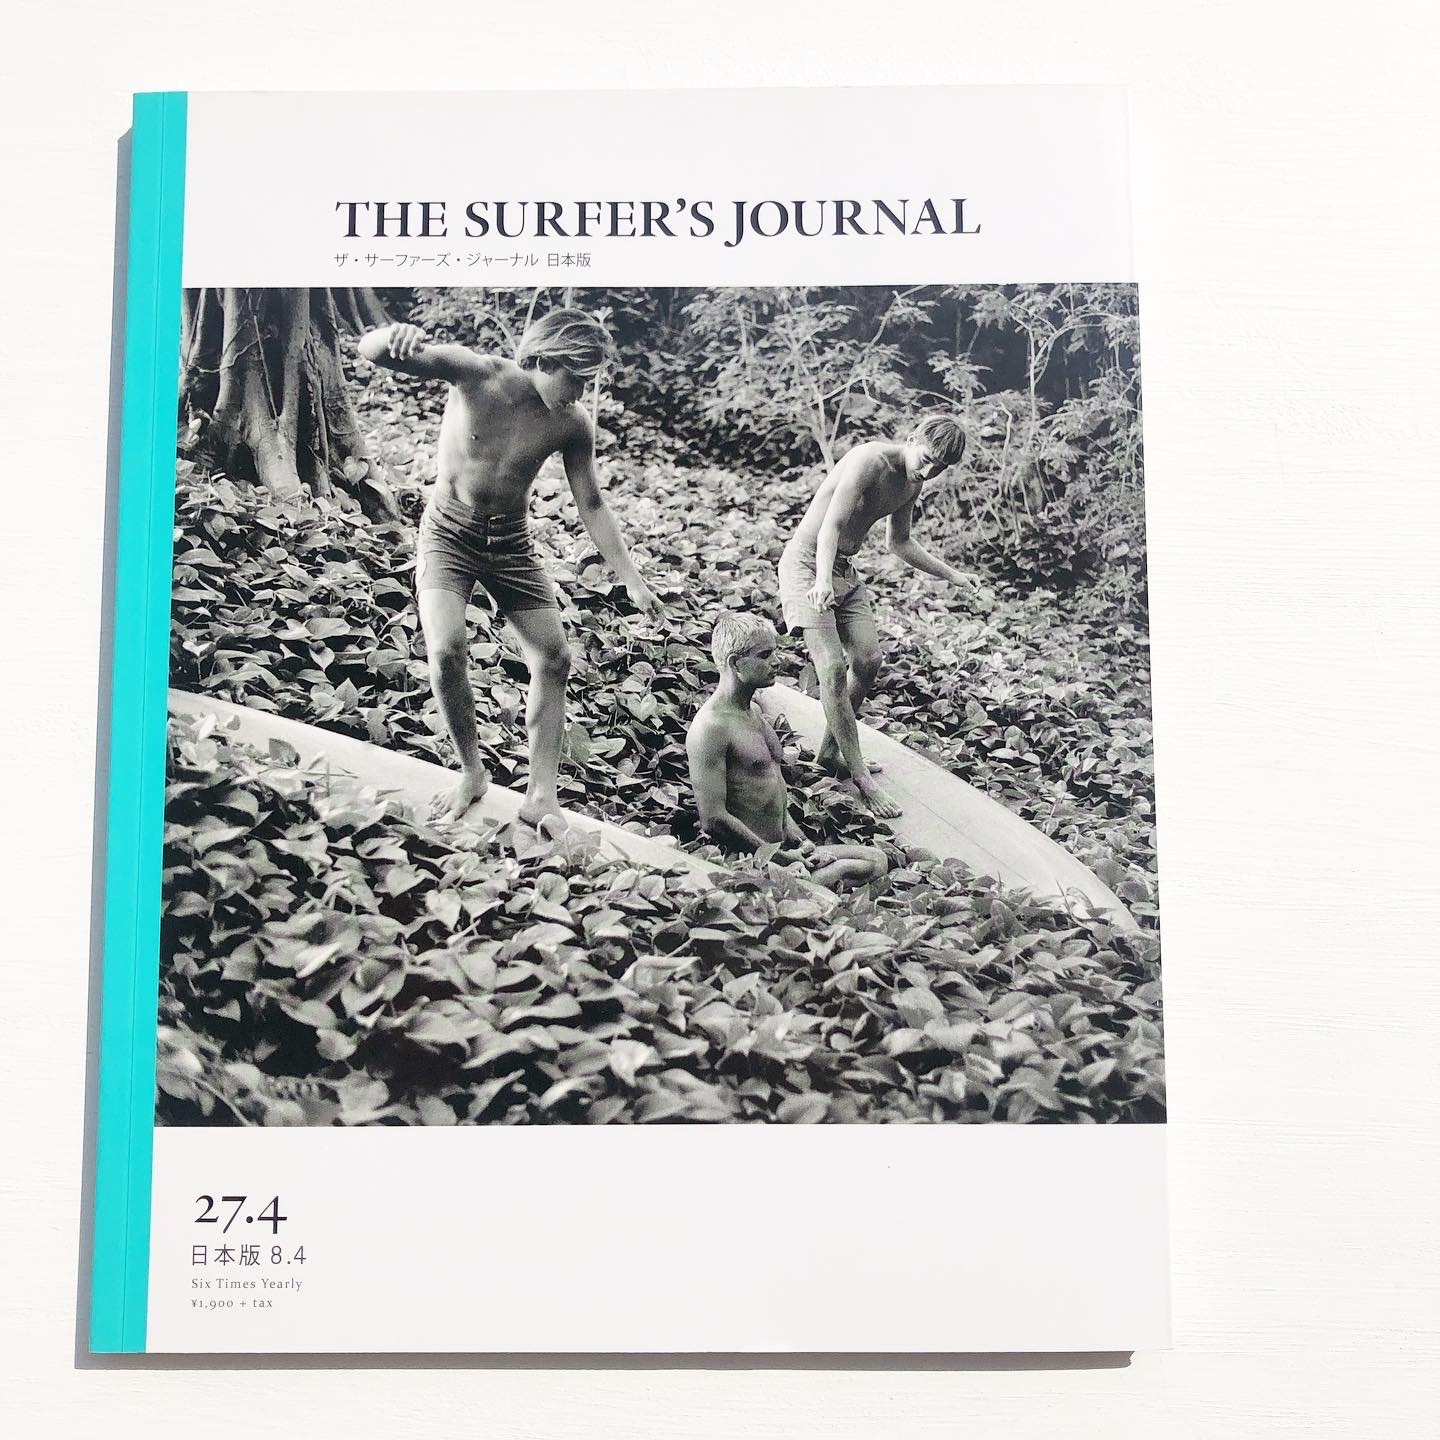 THE SURFER'S JOURNAL JAPAN 8.4